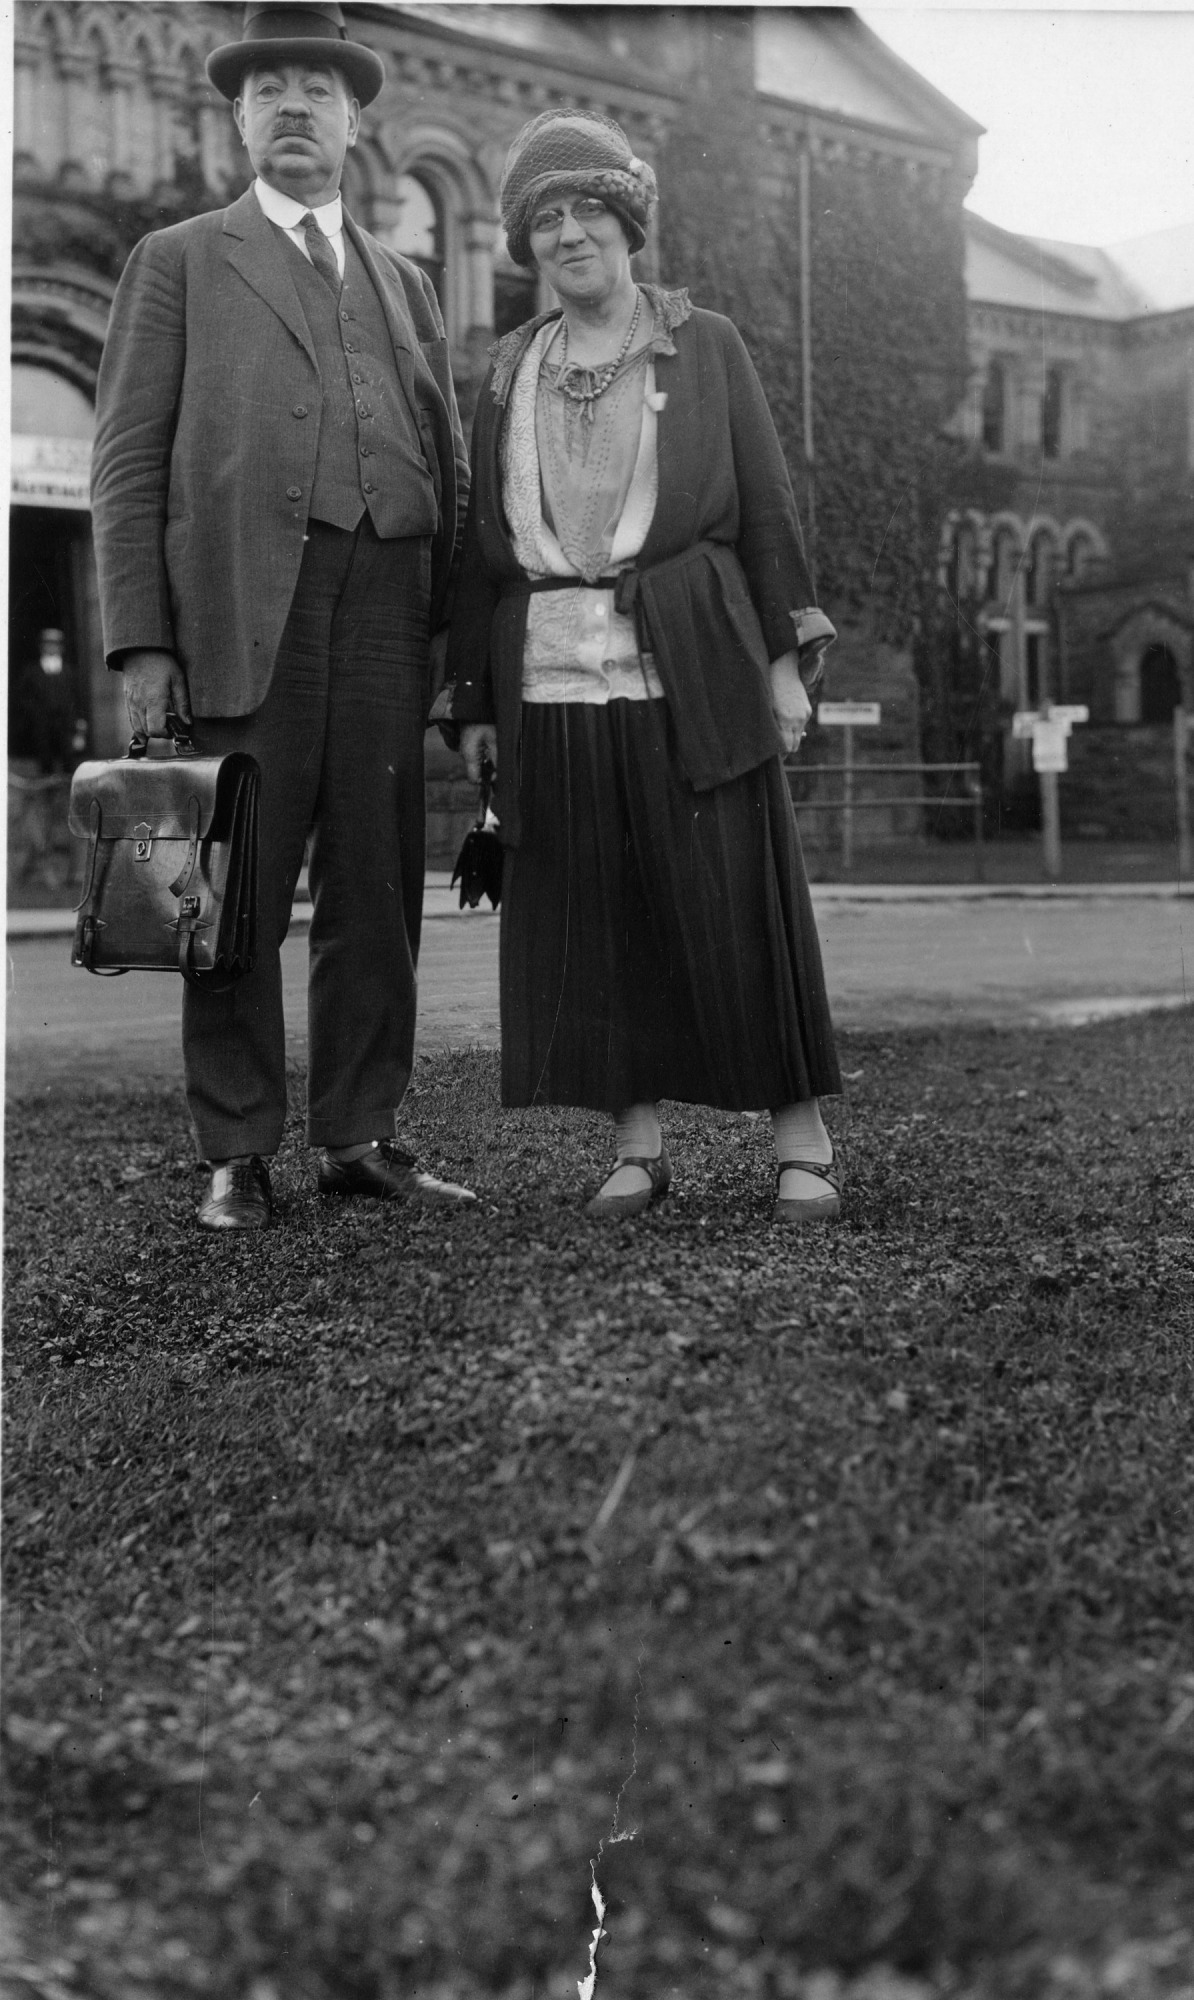 left to right: Edwin Emery Slosson (1865-1929) and May Gorslin Preston Slosson (1858-1943), 1927, Smithsonian Institution Archives, SIA Acc. 90-105 [SIA2009-3461].